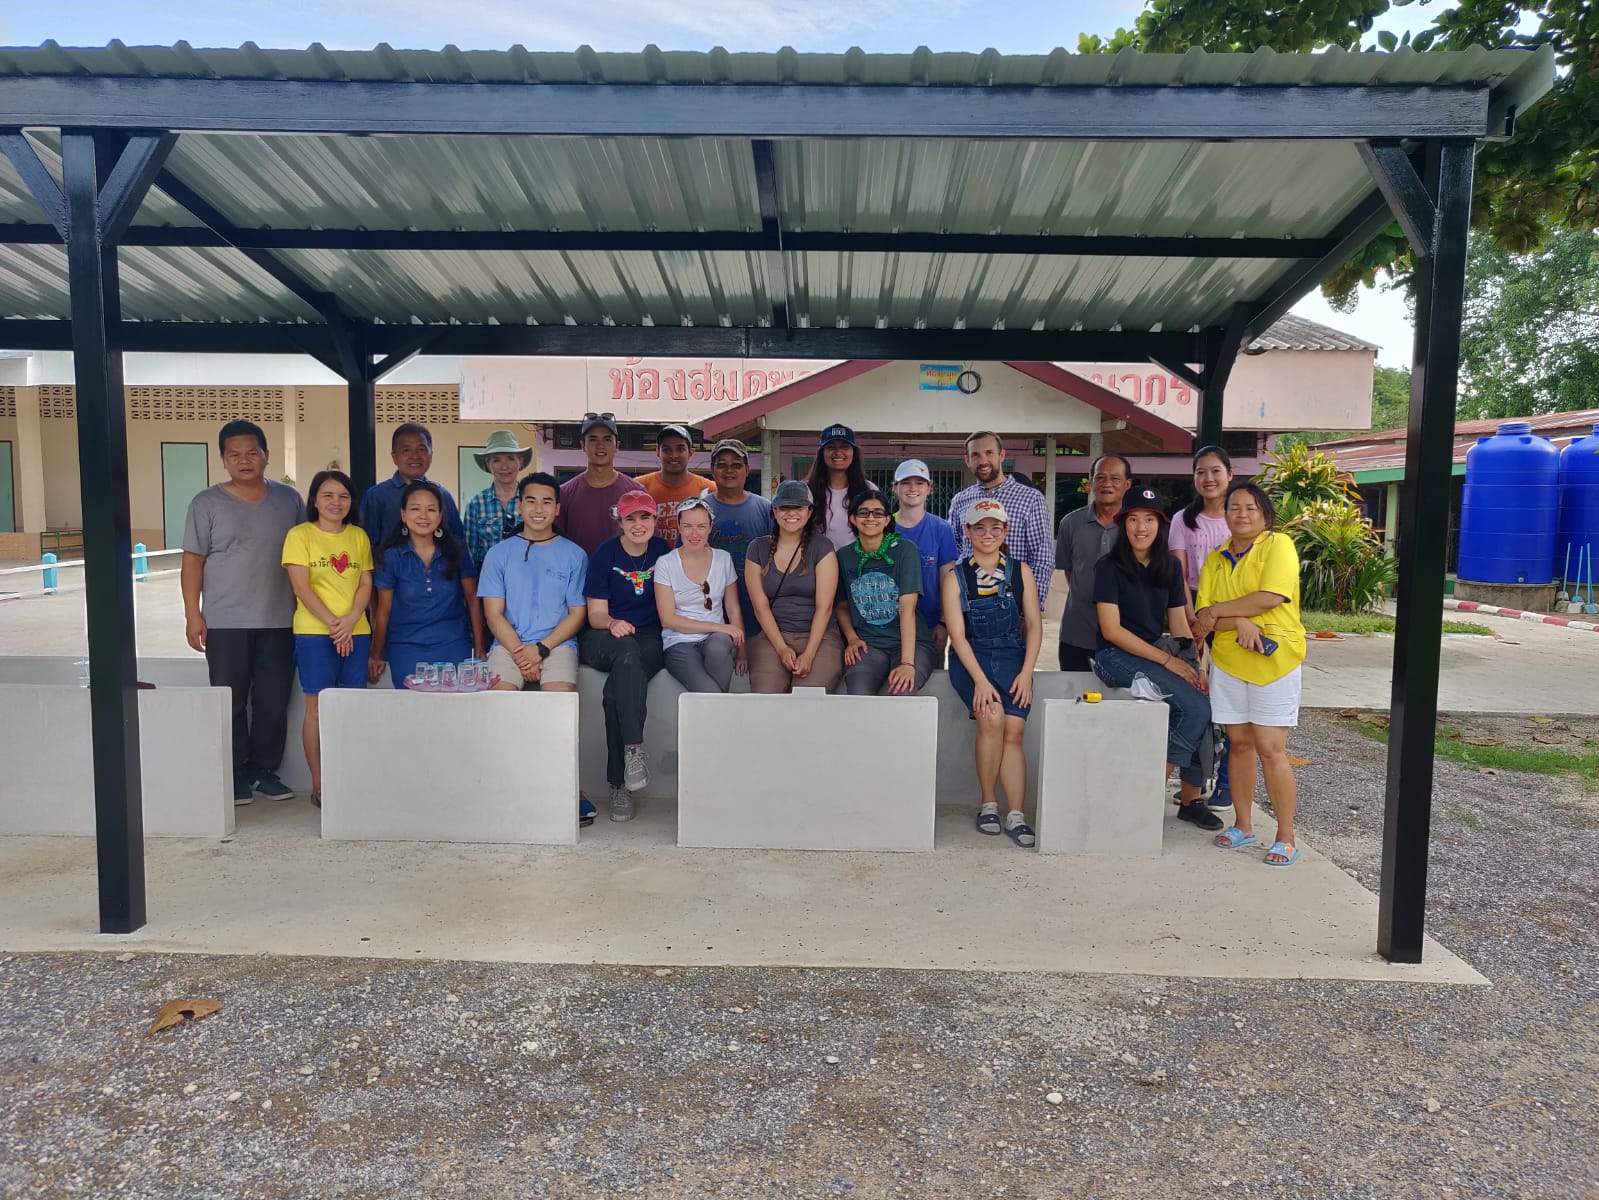 Both teams went to Ban Huai Yang Elementary School to check out the progress made from our design for pre-arrival!